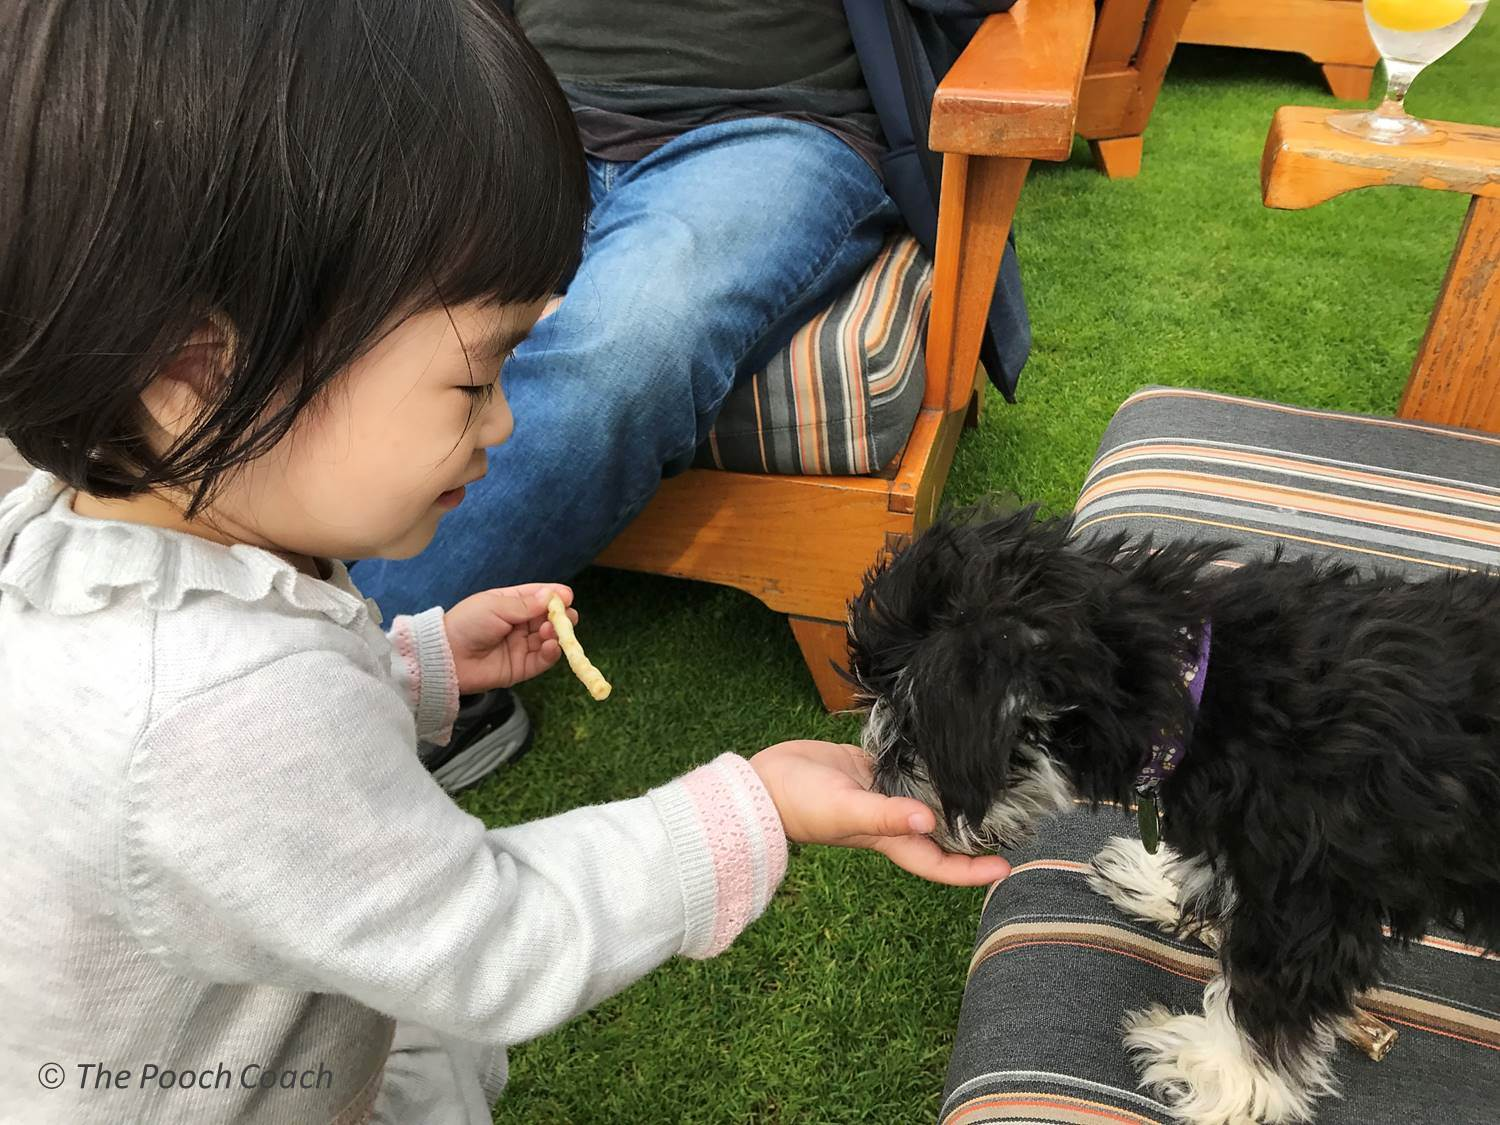 SOCIALIZING YOUR NEW PUPPY OR DOG